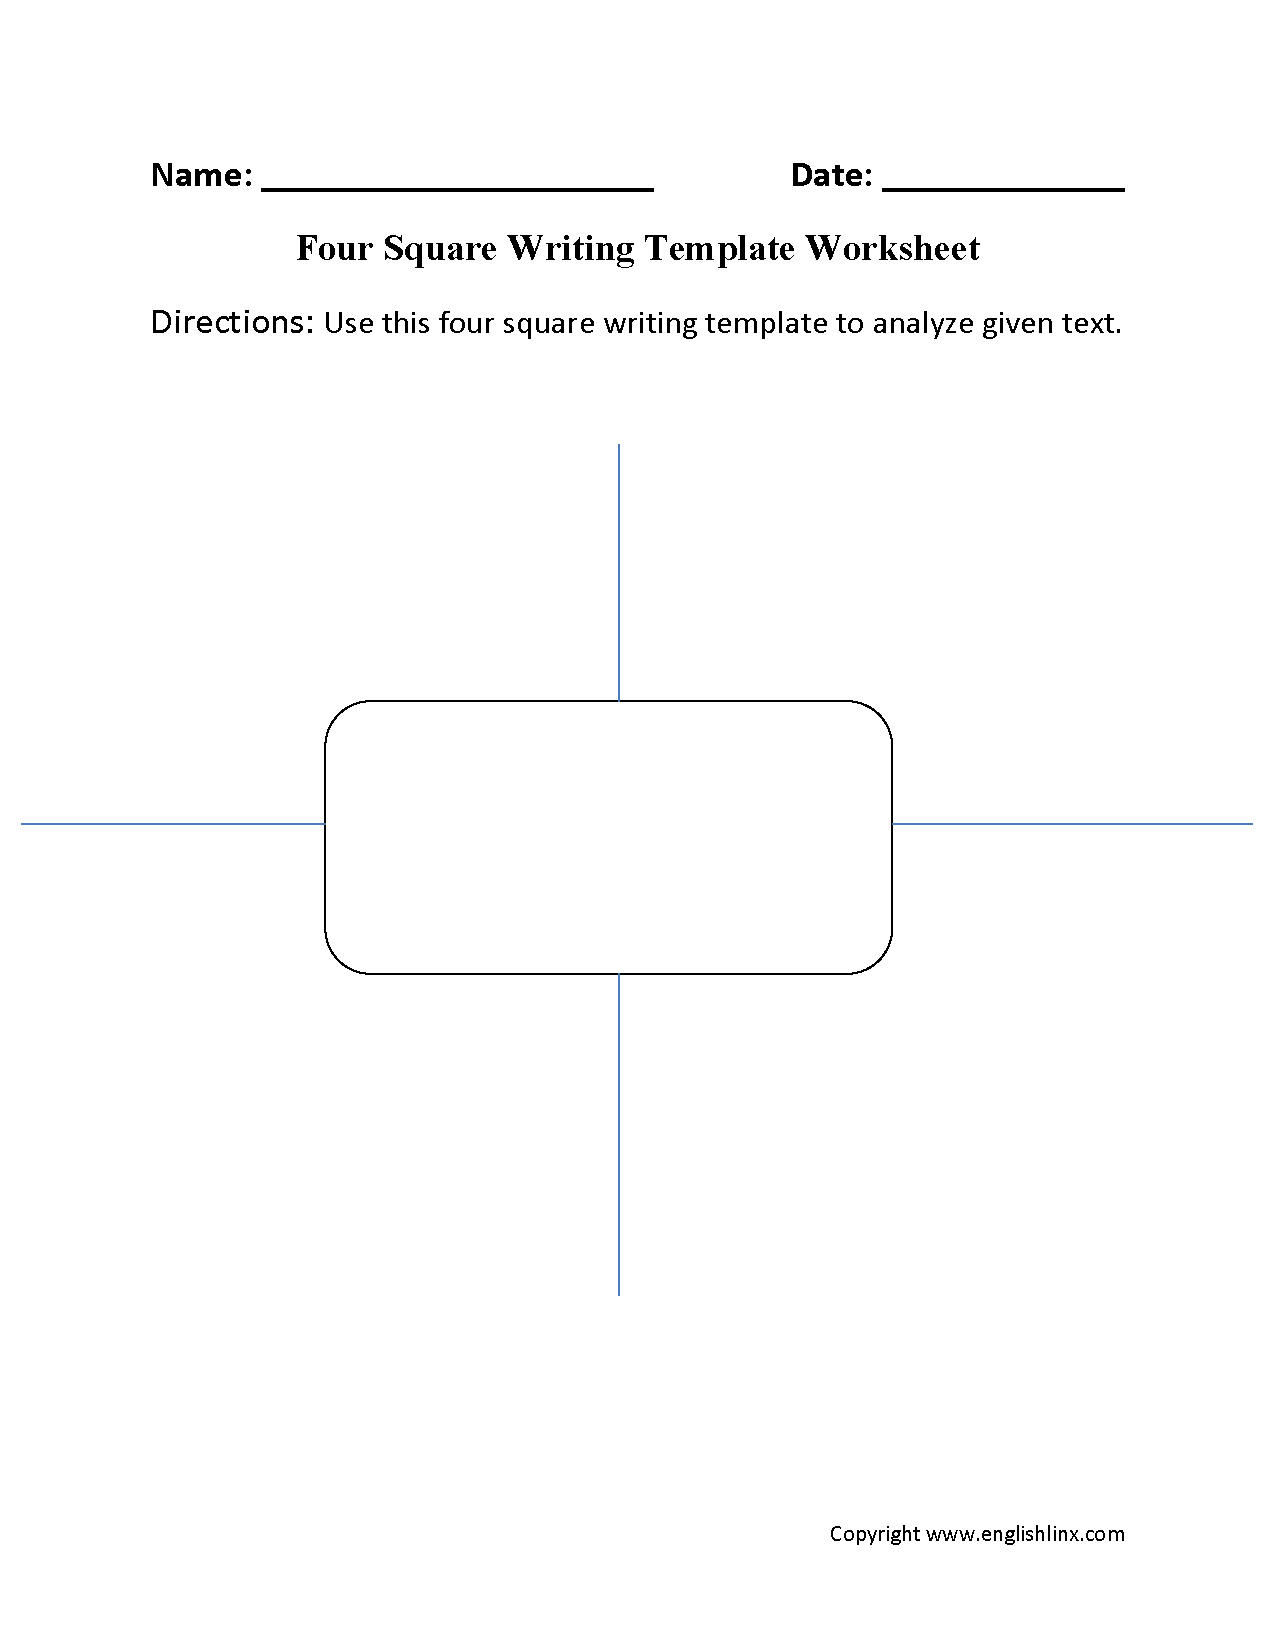 Writing Template Worksheets  Four Square Writing Template Worksheet Regarding Blank Four Square Writing Template